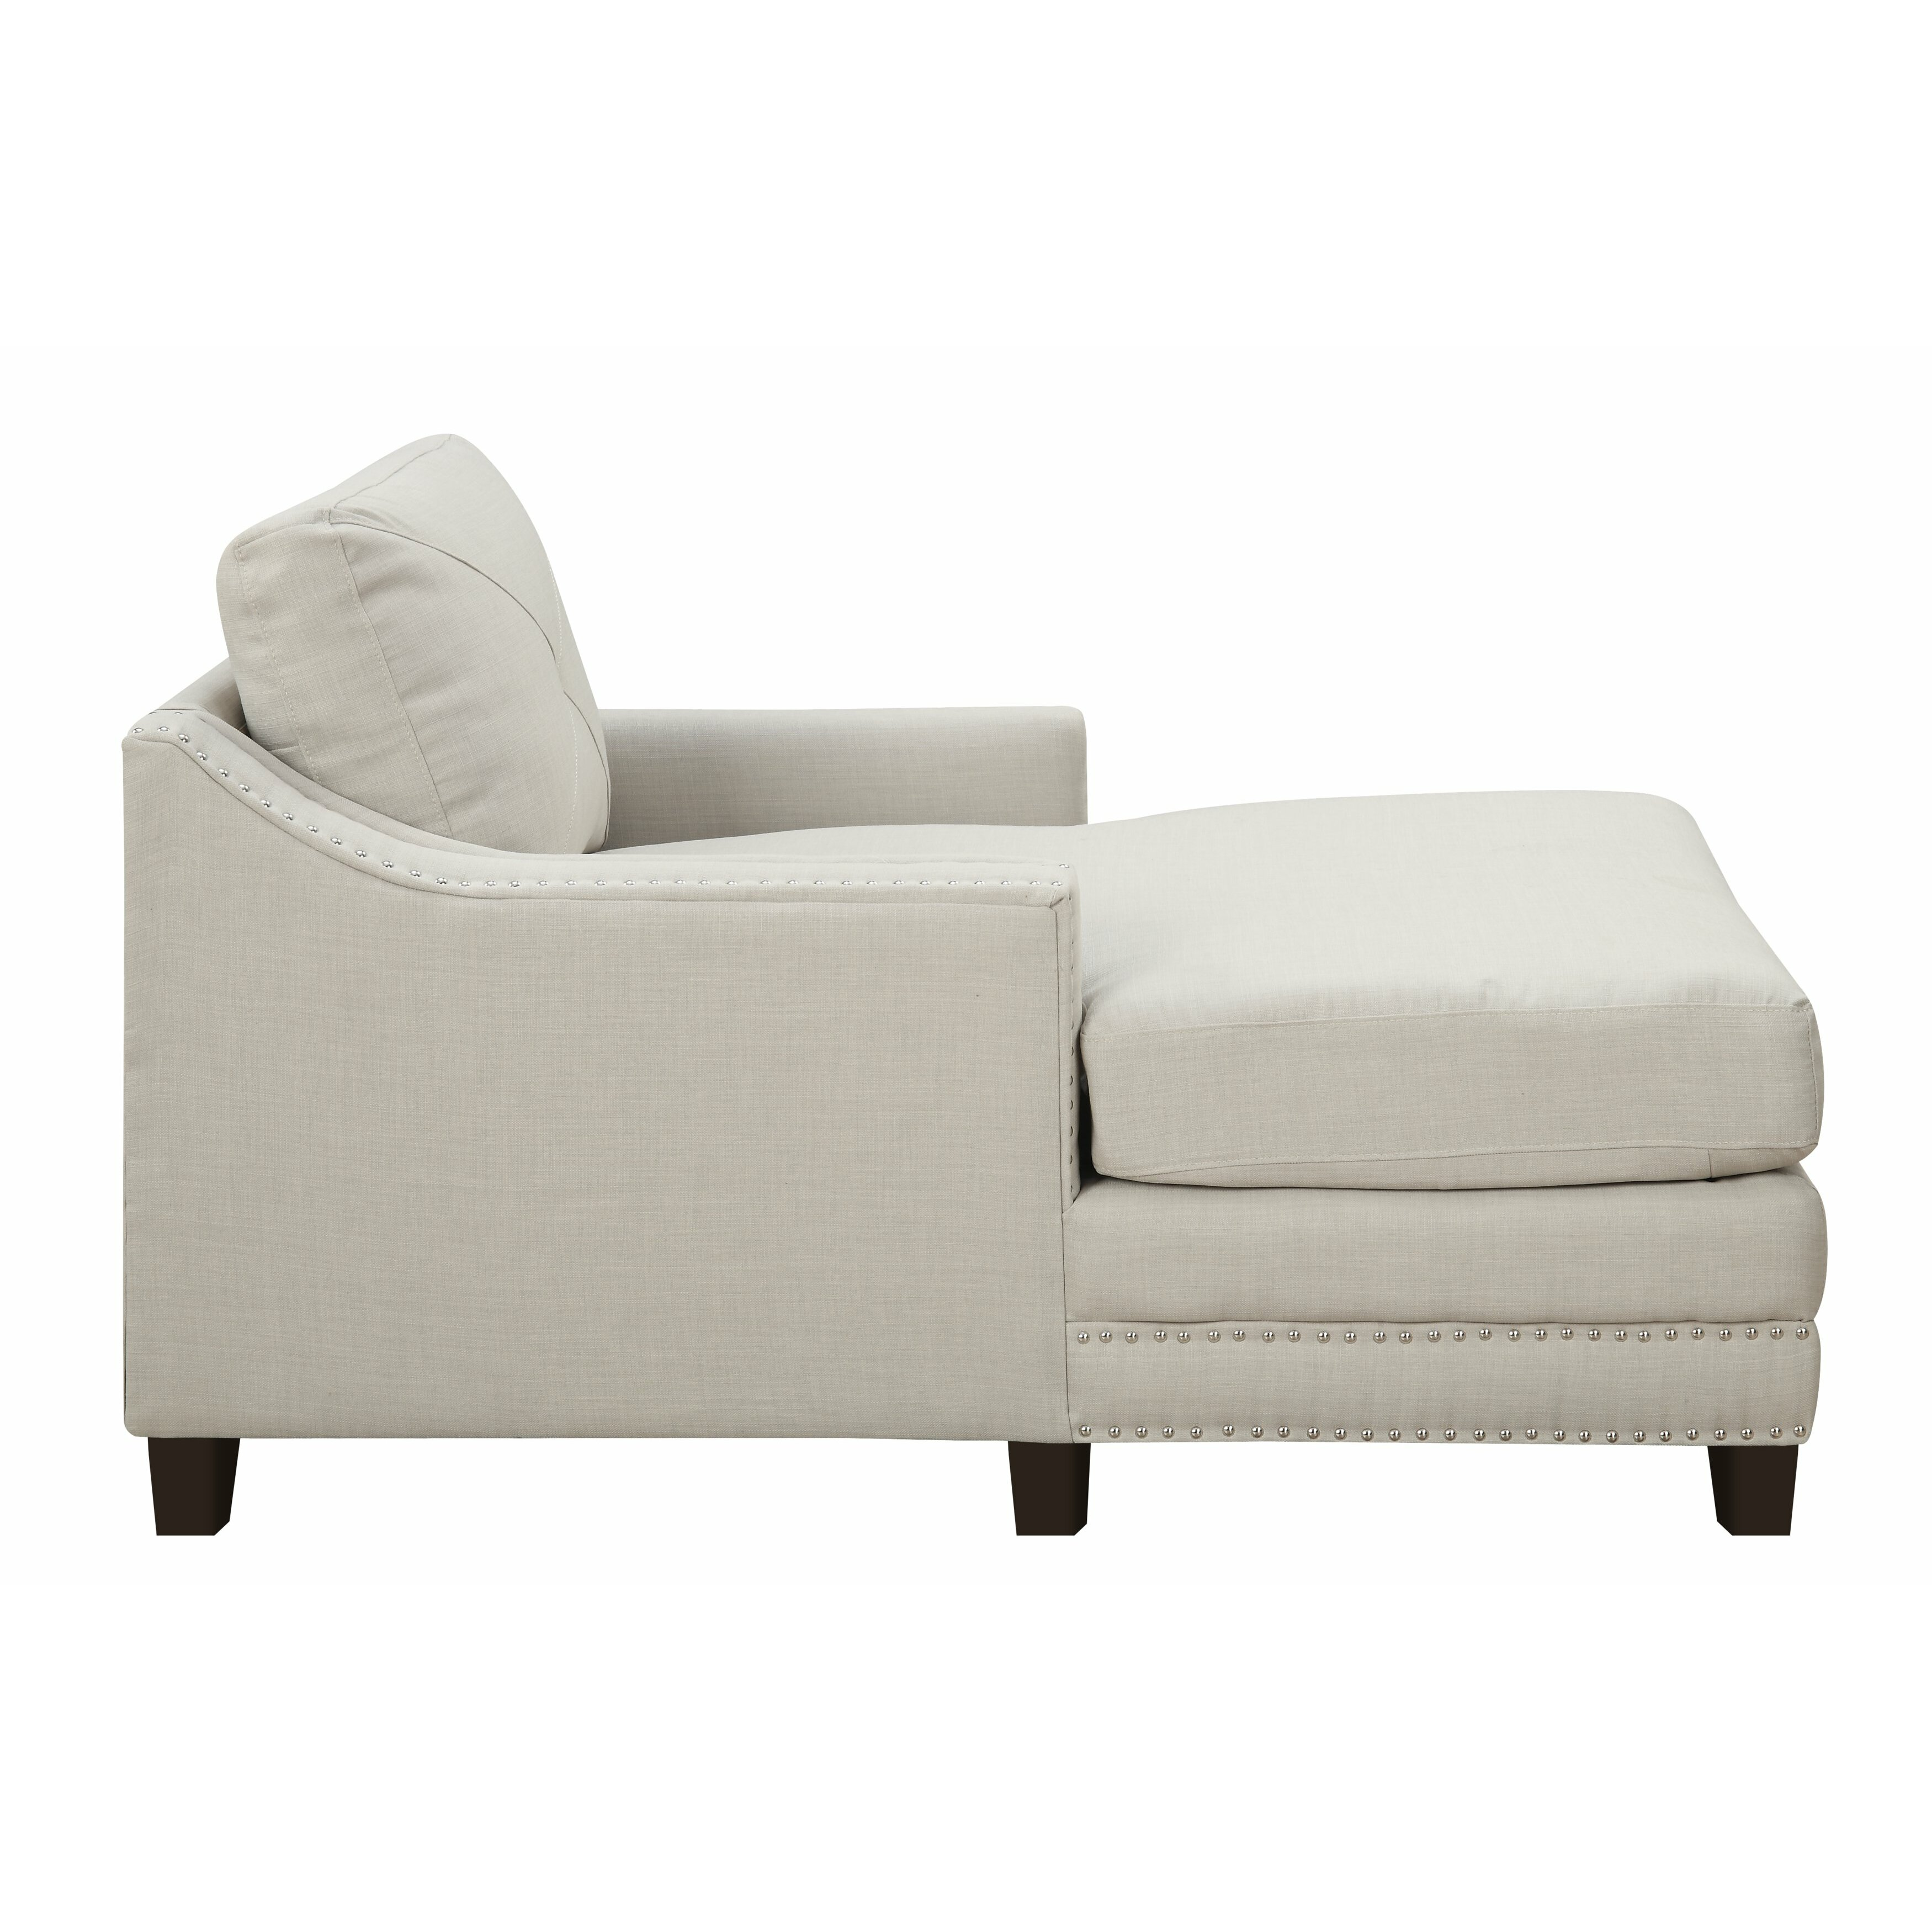 Beachcrest home galveston pier chaise lounge wayfair - Pier one lounge chairs ...